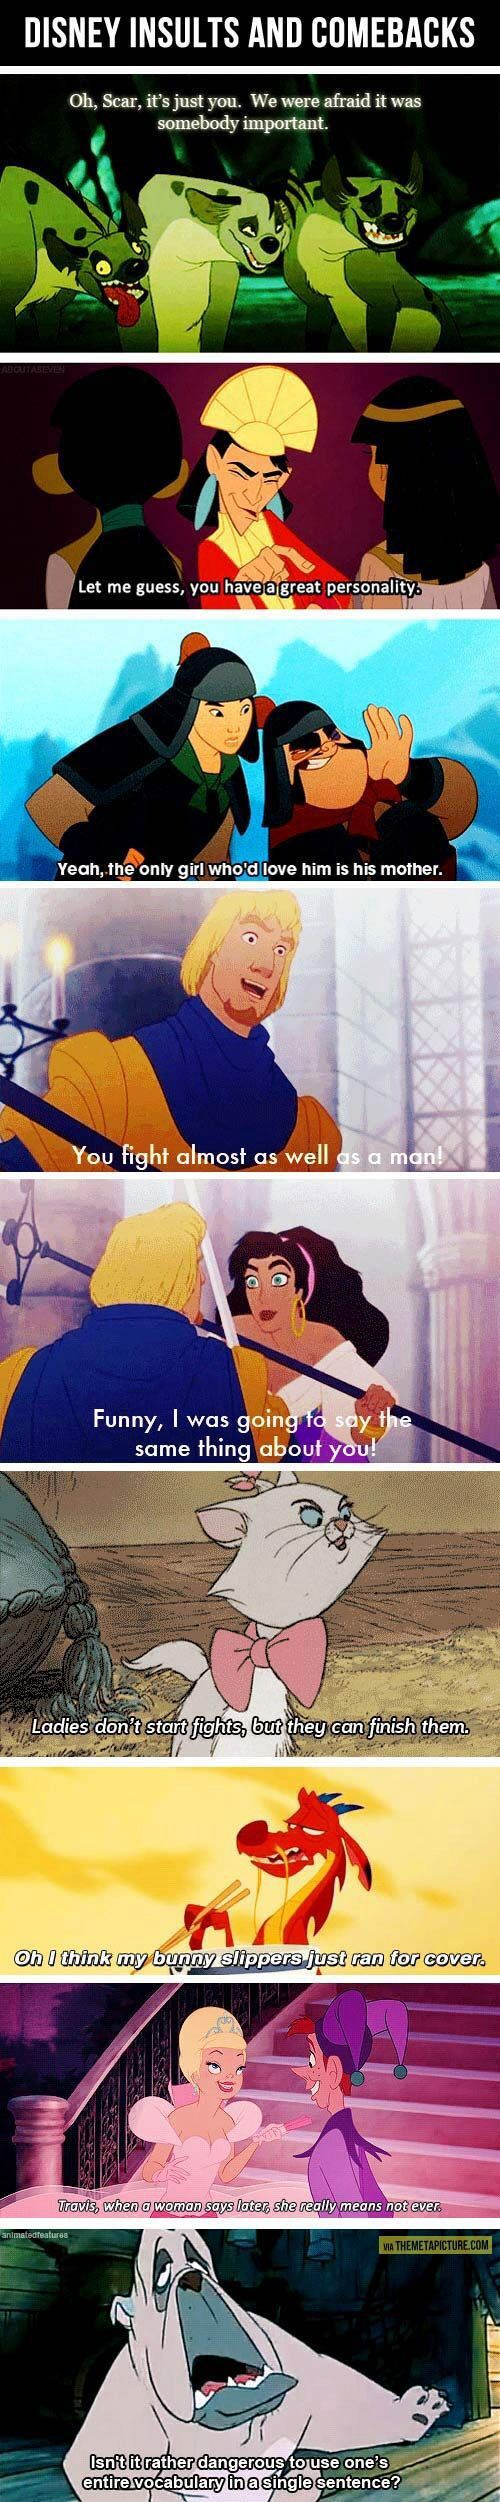 Disney insults and come backs